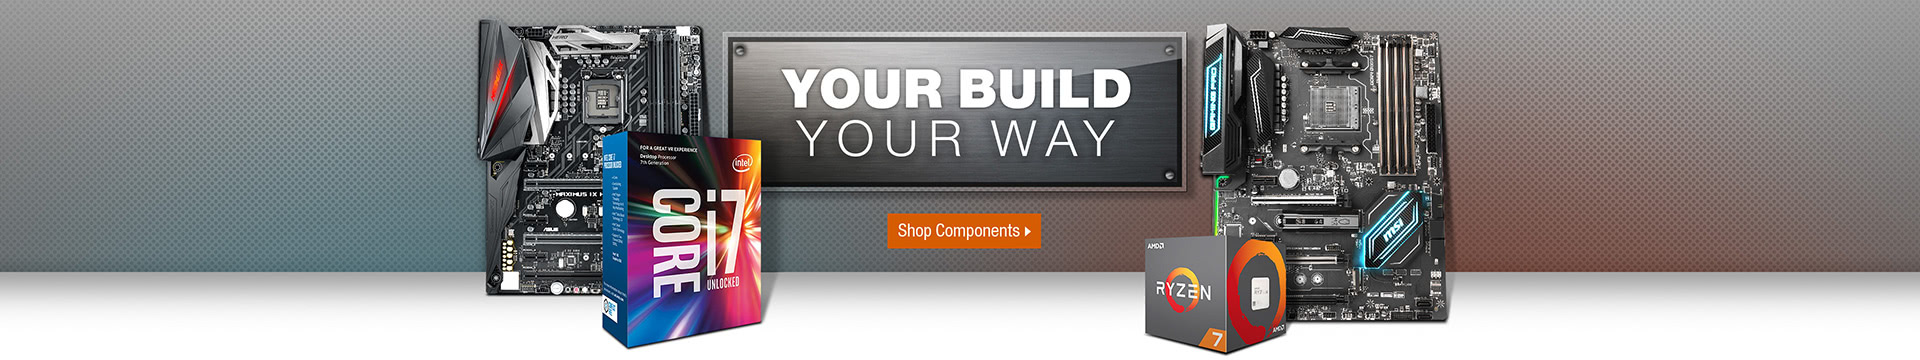 Your Build, Your Way